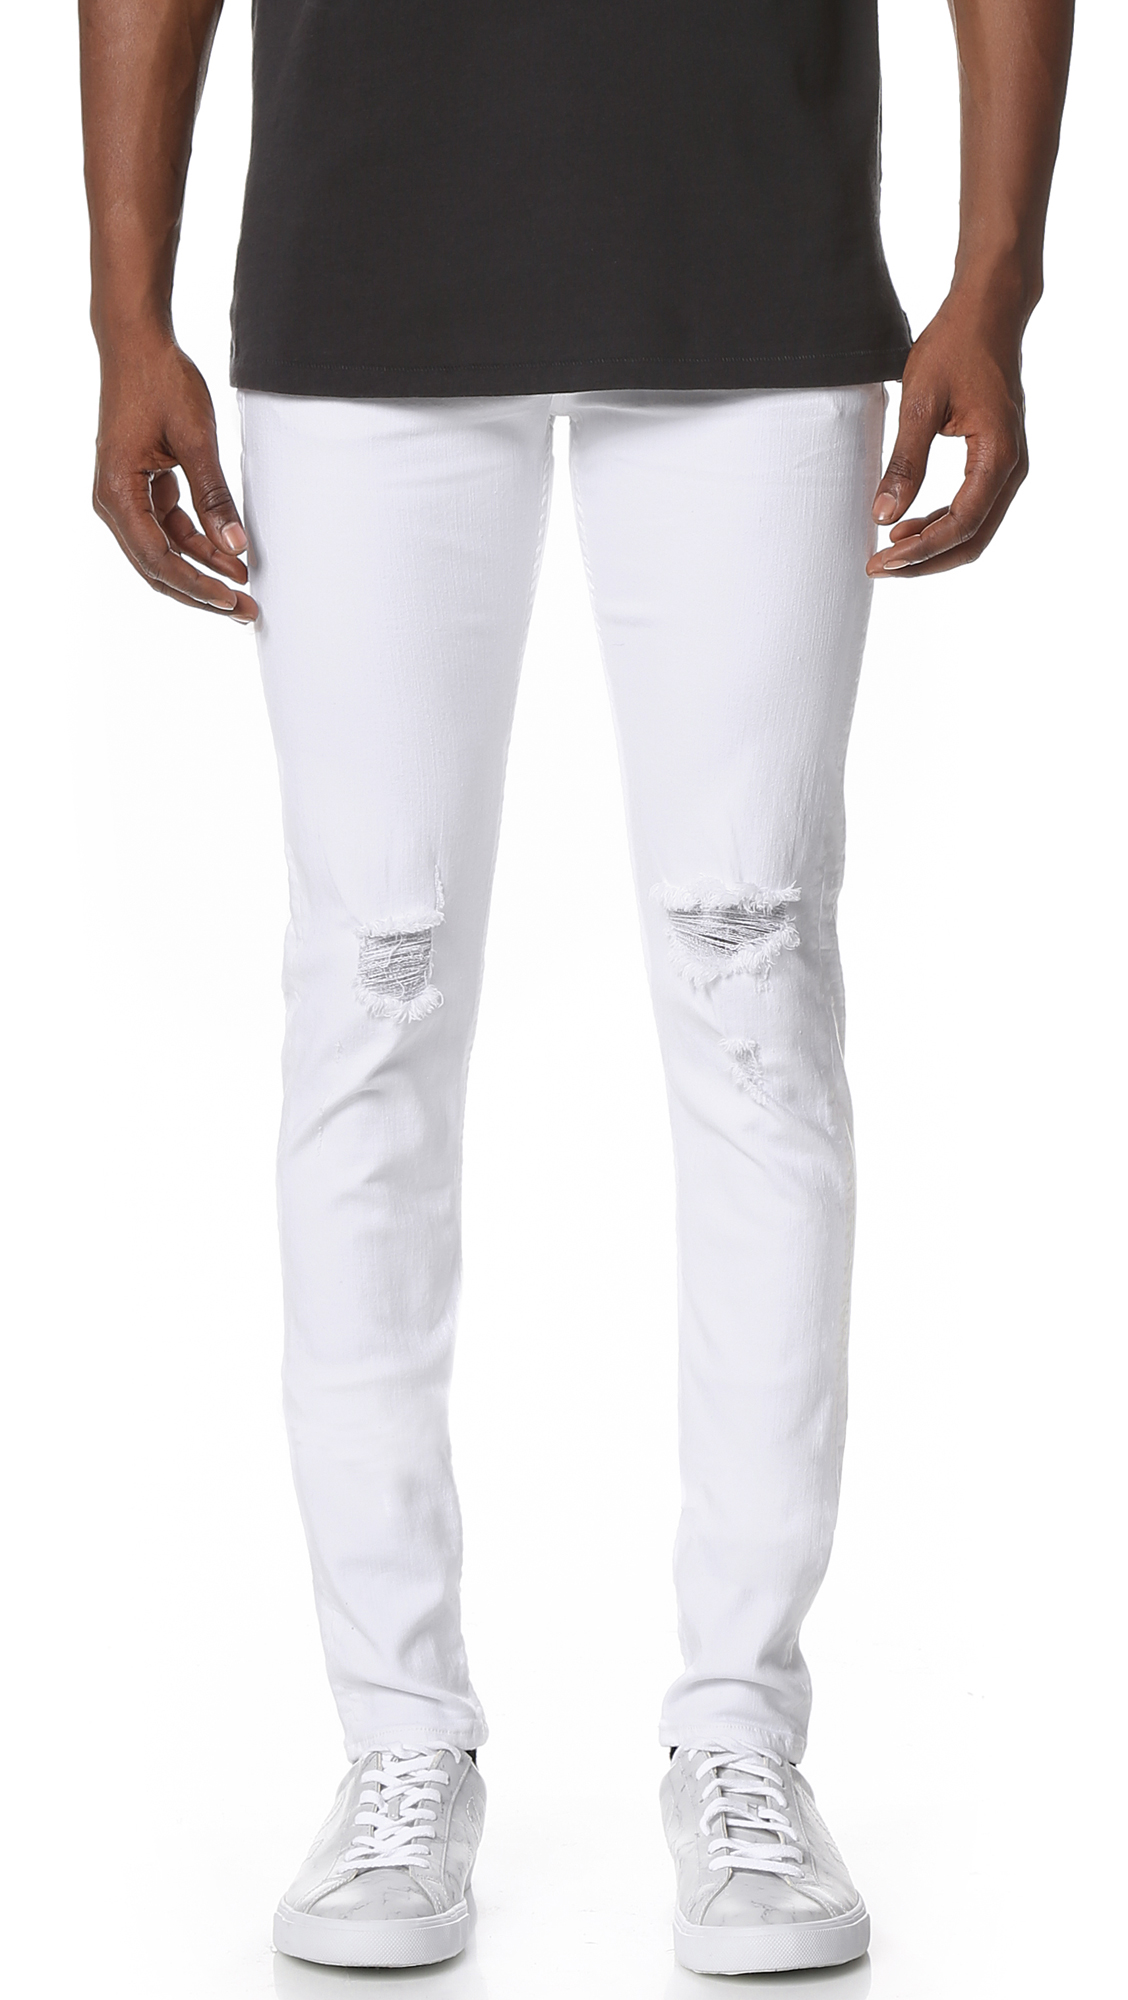 53ab9ed1 Rag Bone Fit 1 Jeans In Aged White With Holes Size 31. Rag Bonemen S Standard  Issue ...